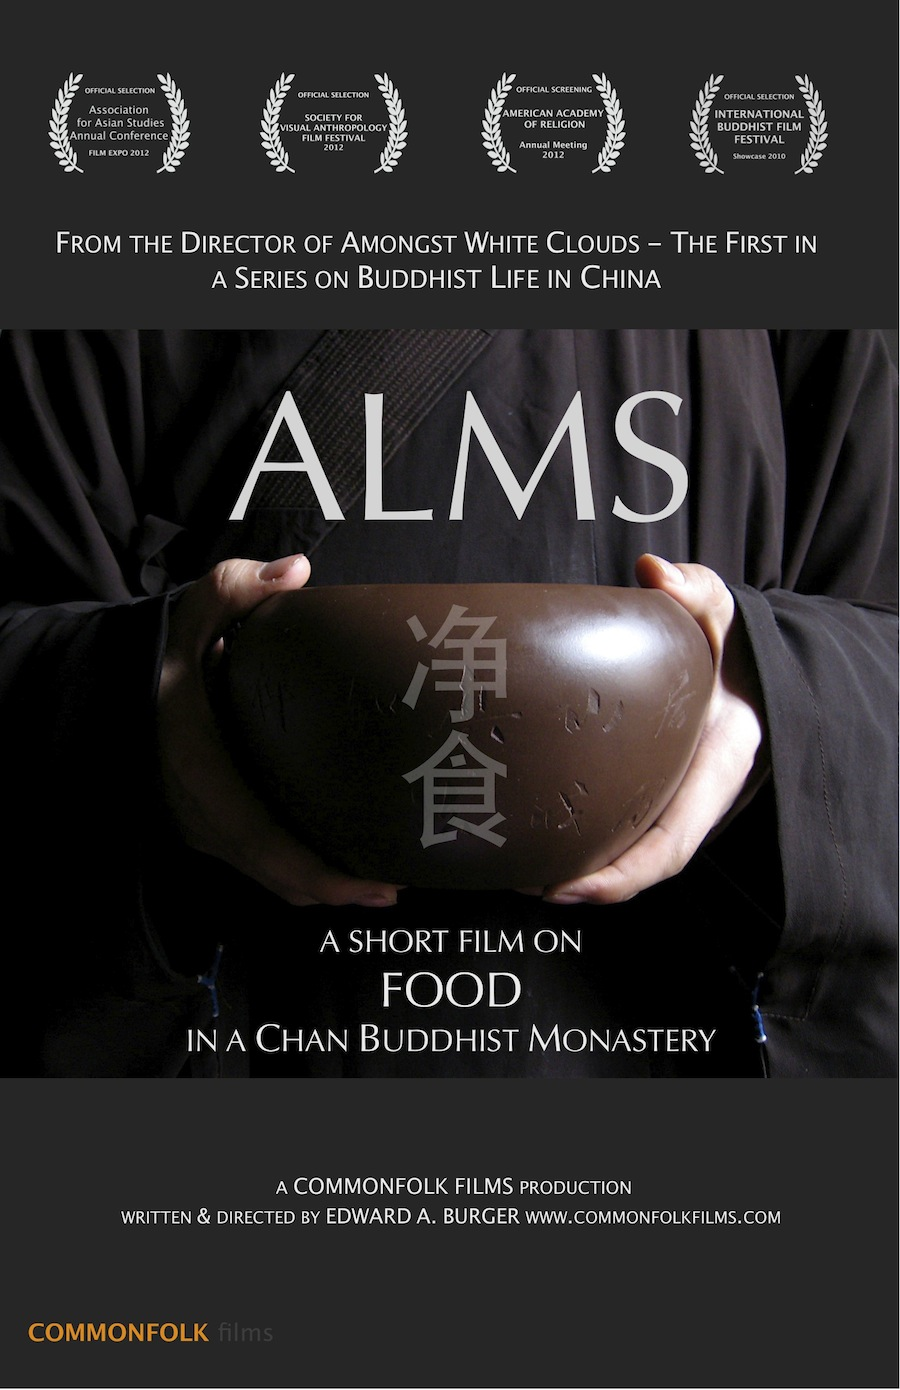 ALMS - A short film on food in a Chan Buddhist Monastery